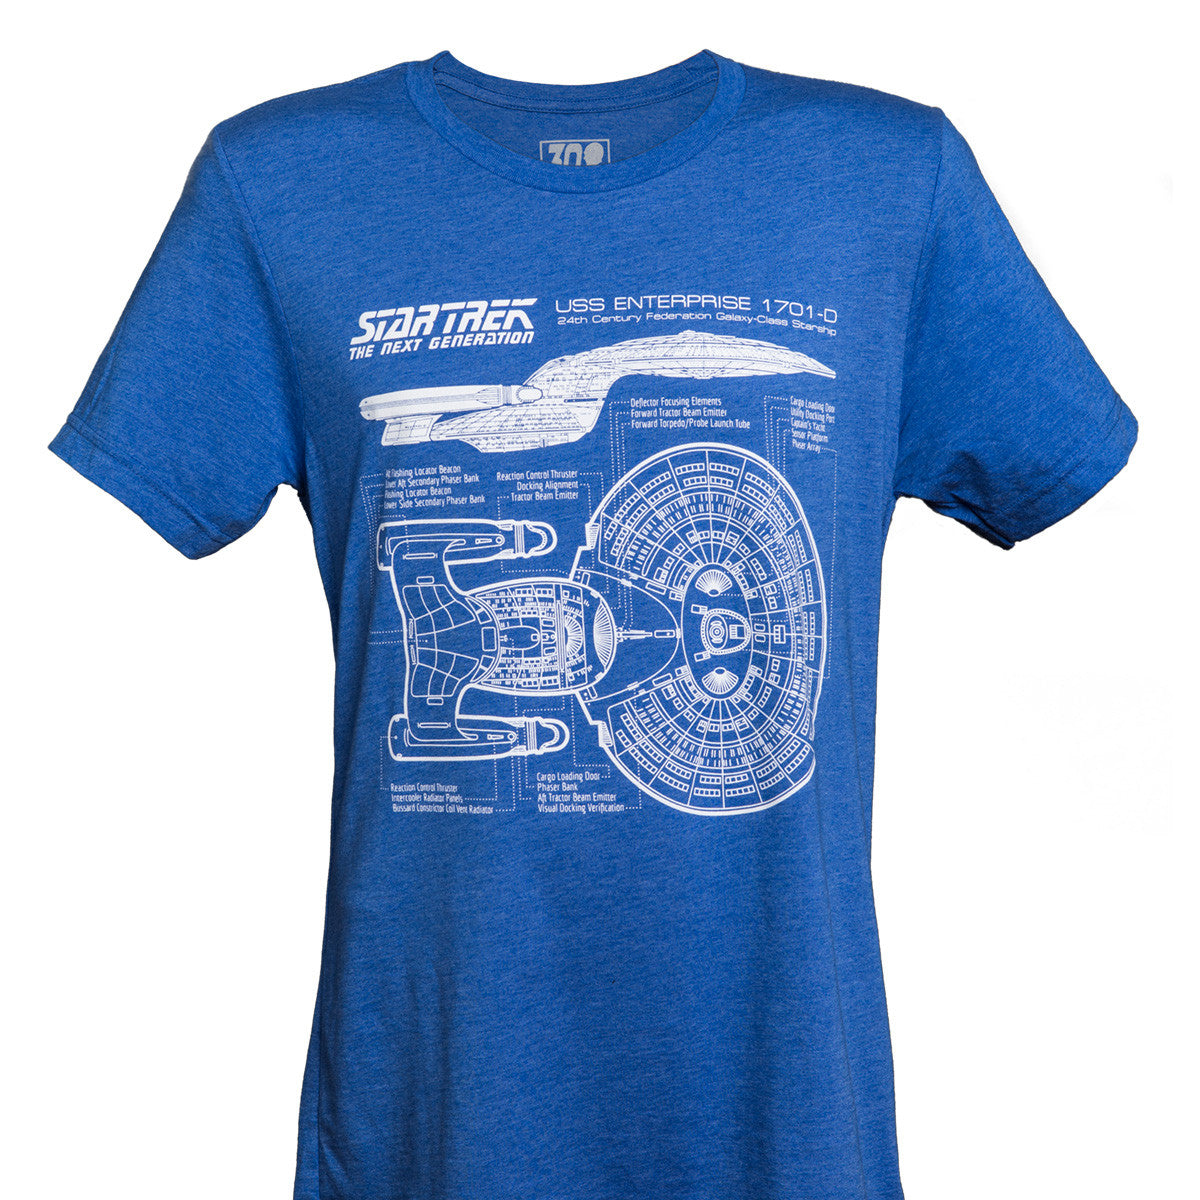 TNG 30th Anniversary T-Shirt (Royal Blue)